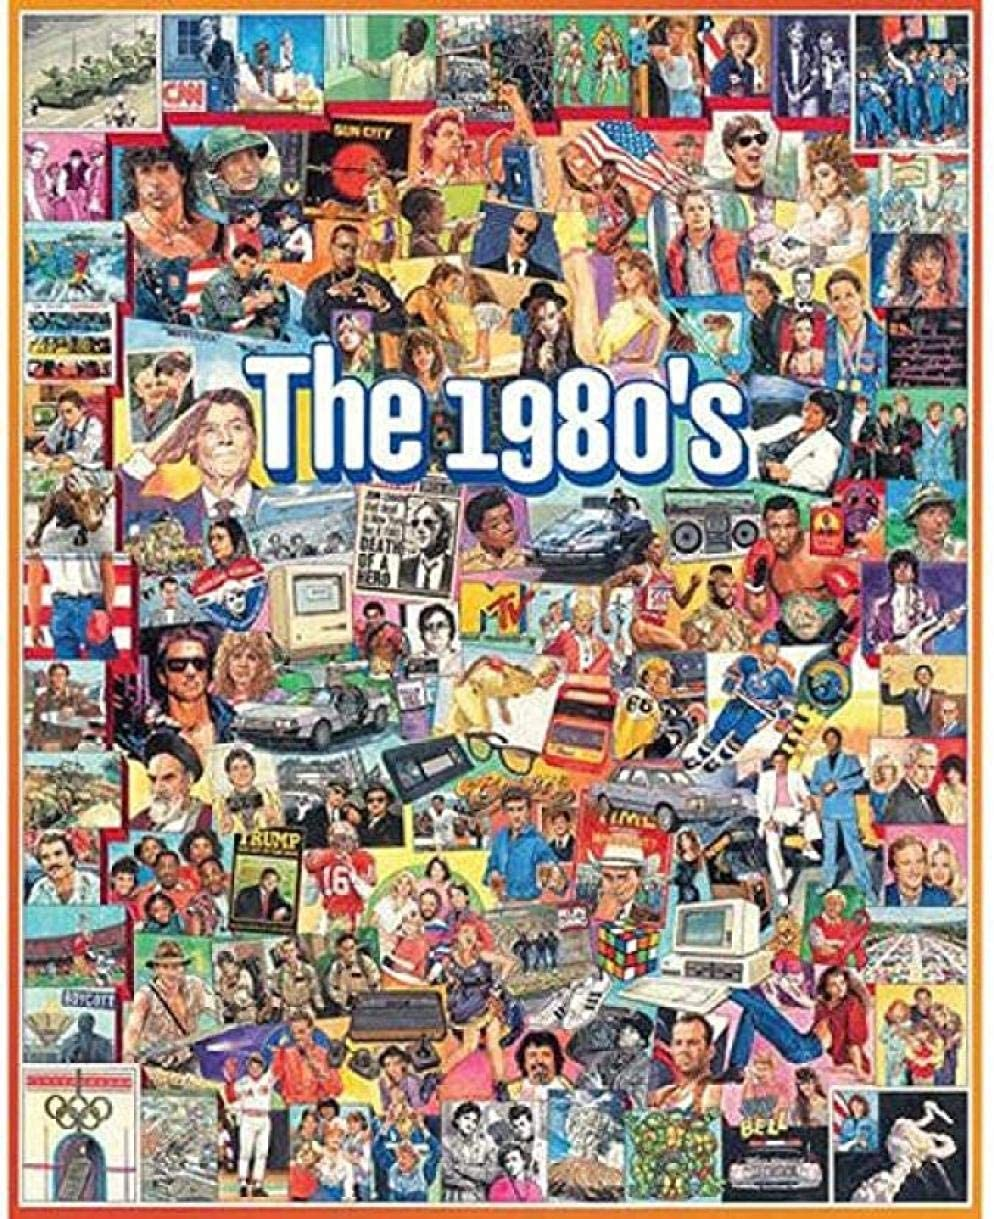 The 1980s Jigsaw Puzzle